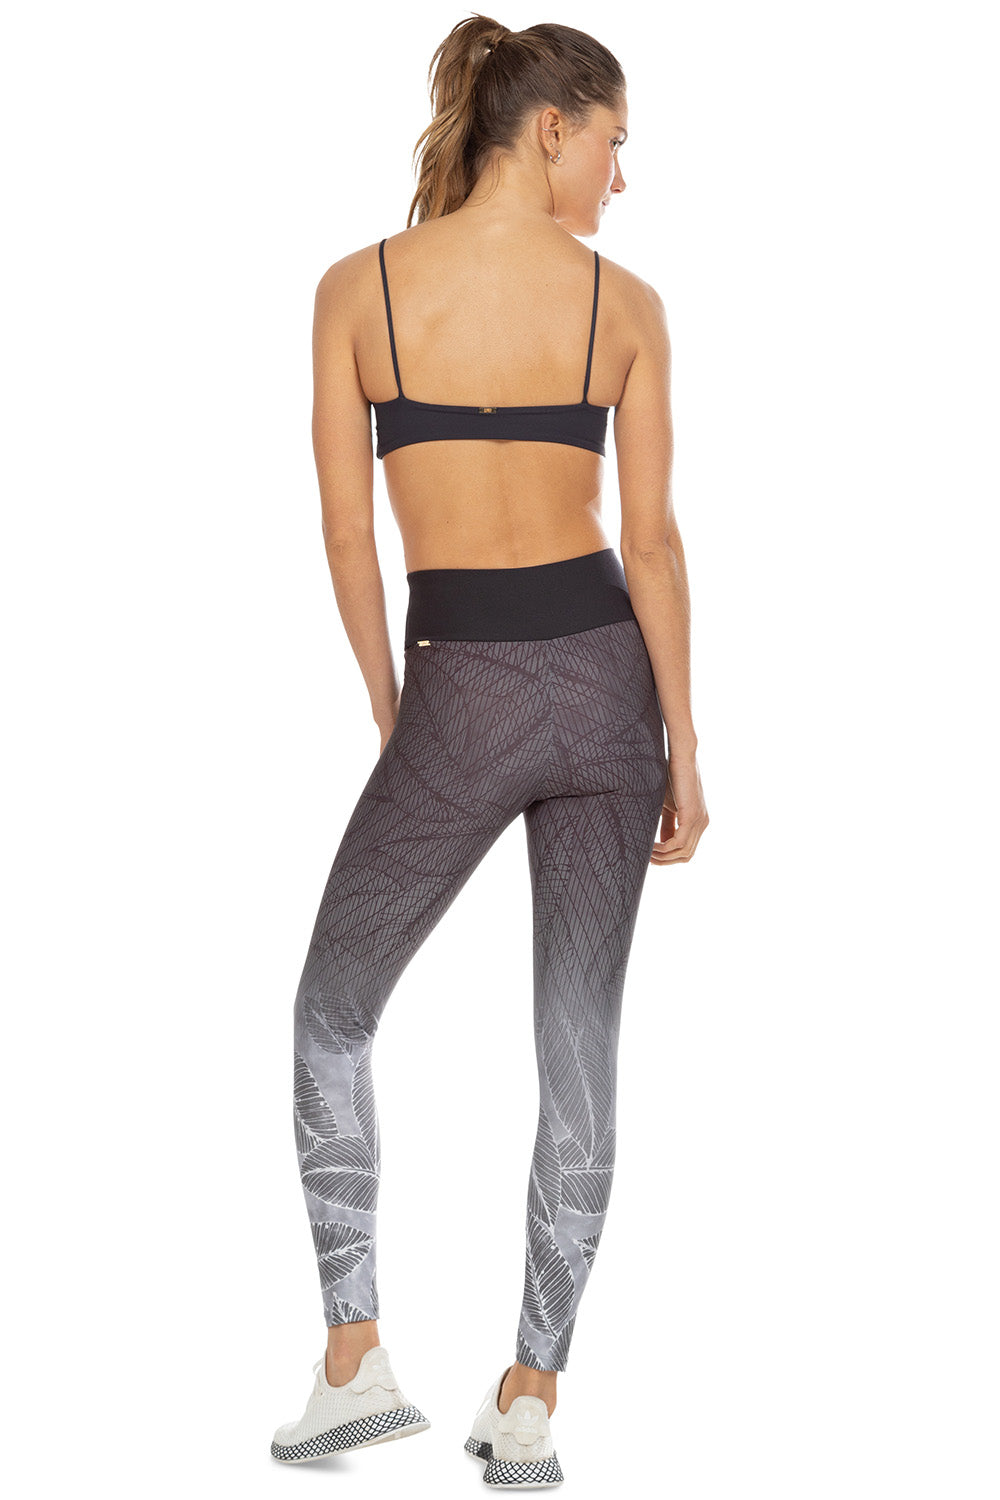 Leaf Lifestyle Legging 2